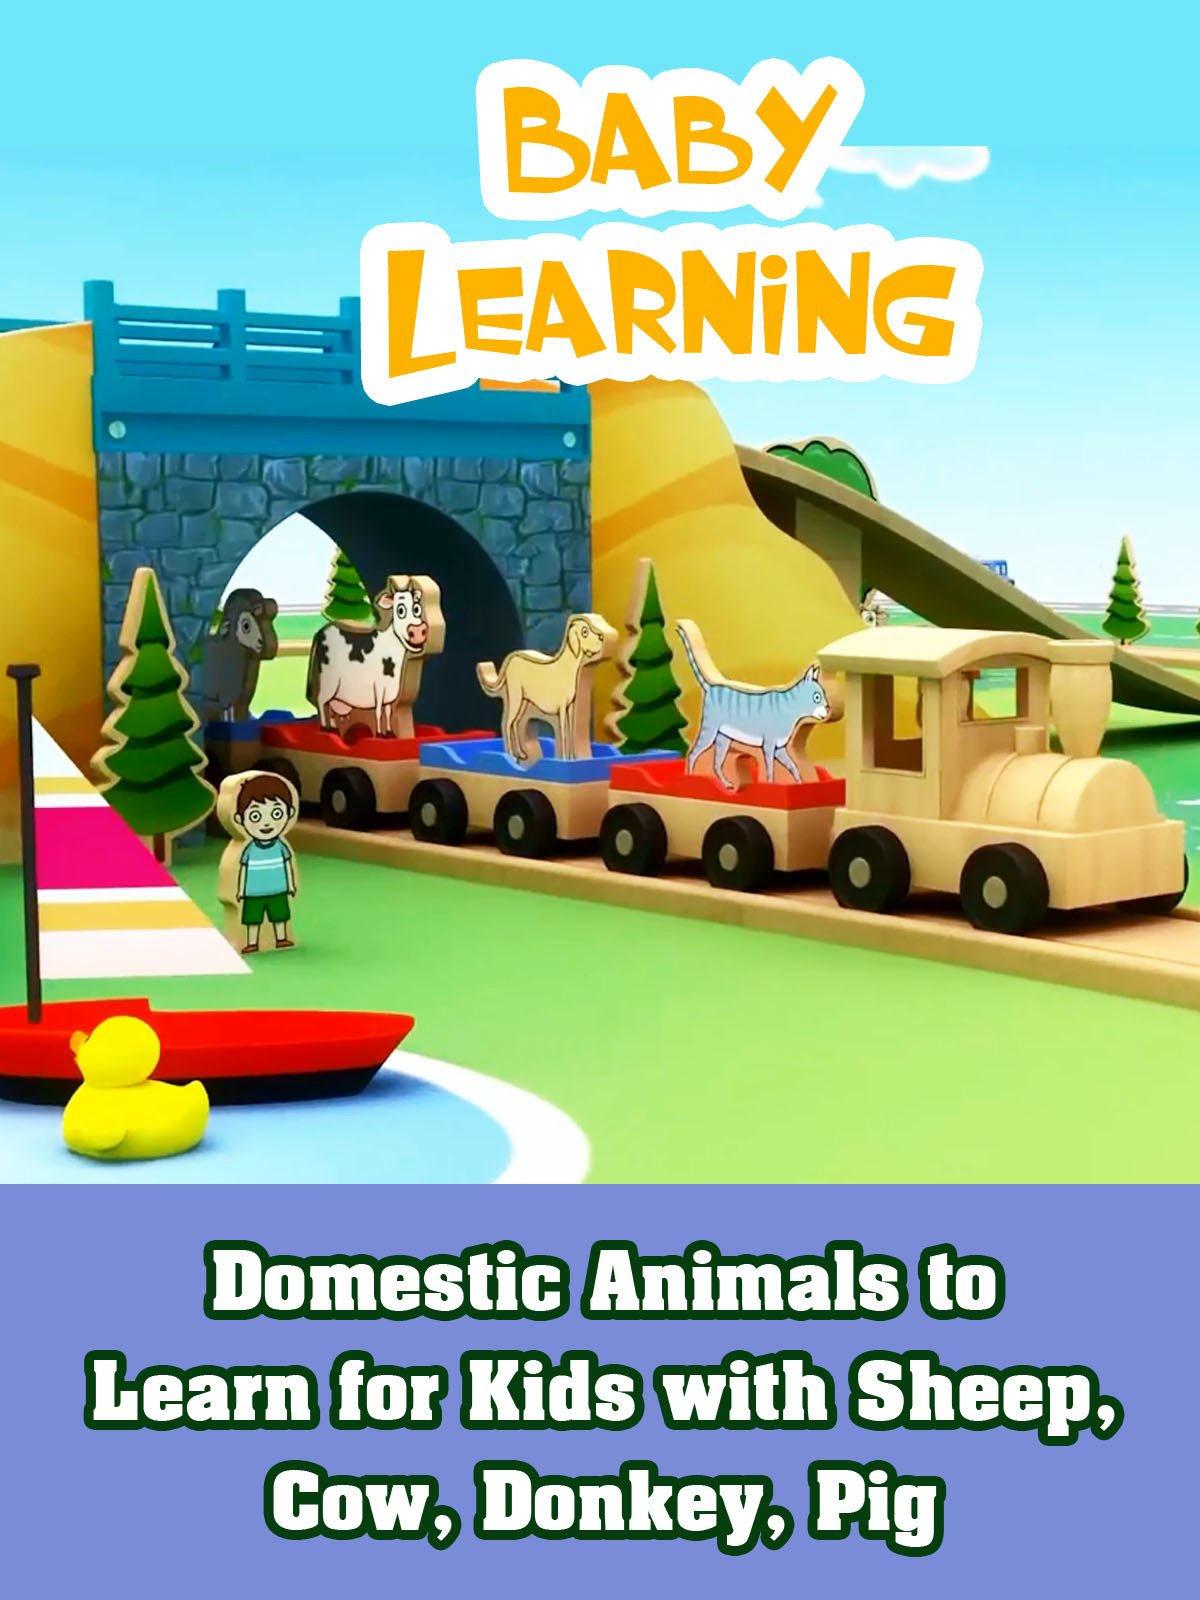 Domestic Animals to Learn for Kids with Sheep, Cow, Donkey, Pig